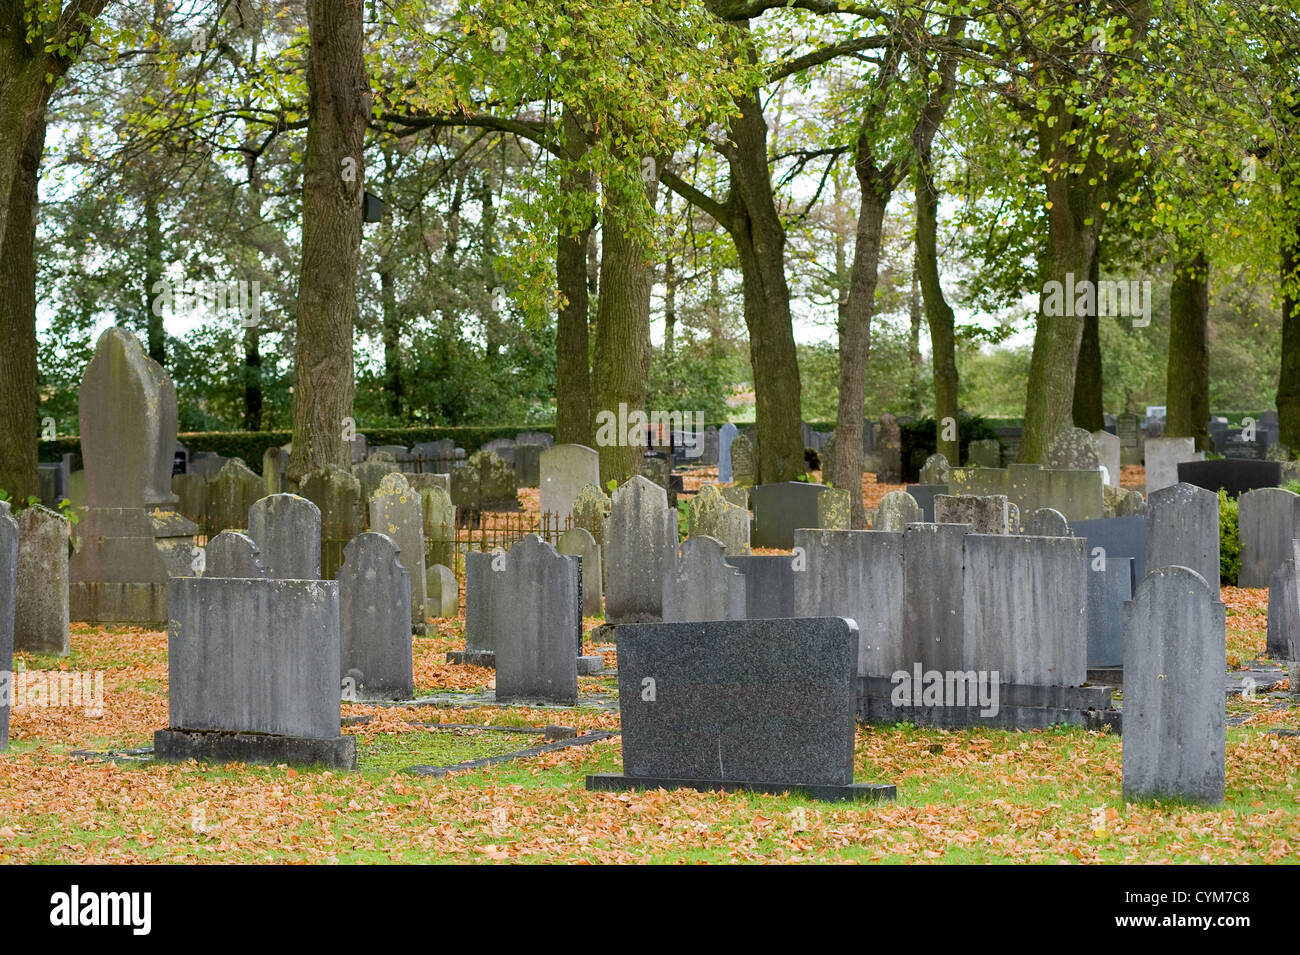 Several tombstones on a graveyard - Stock Image